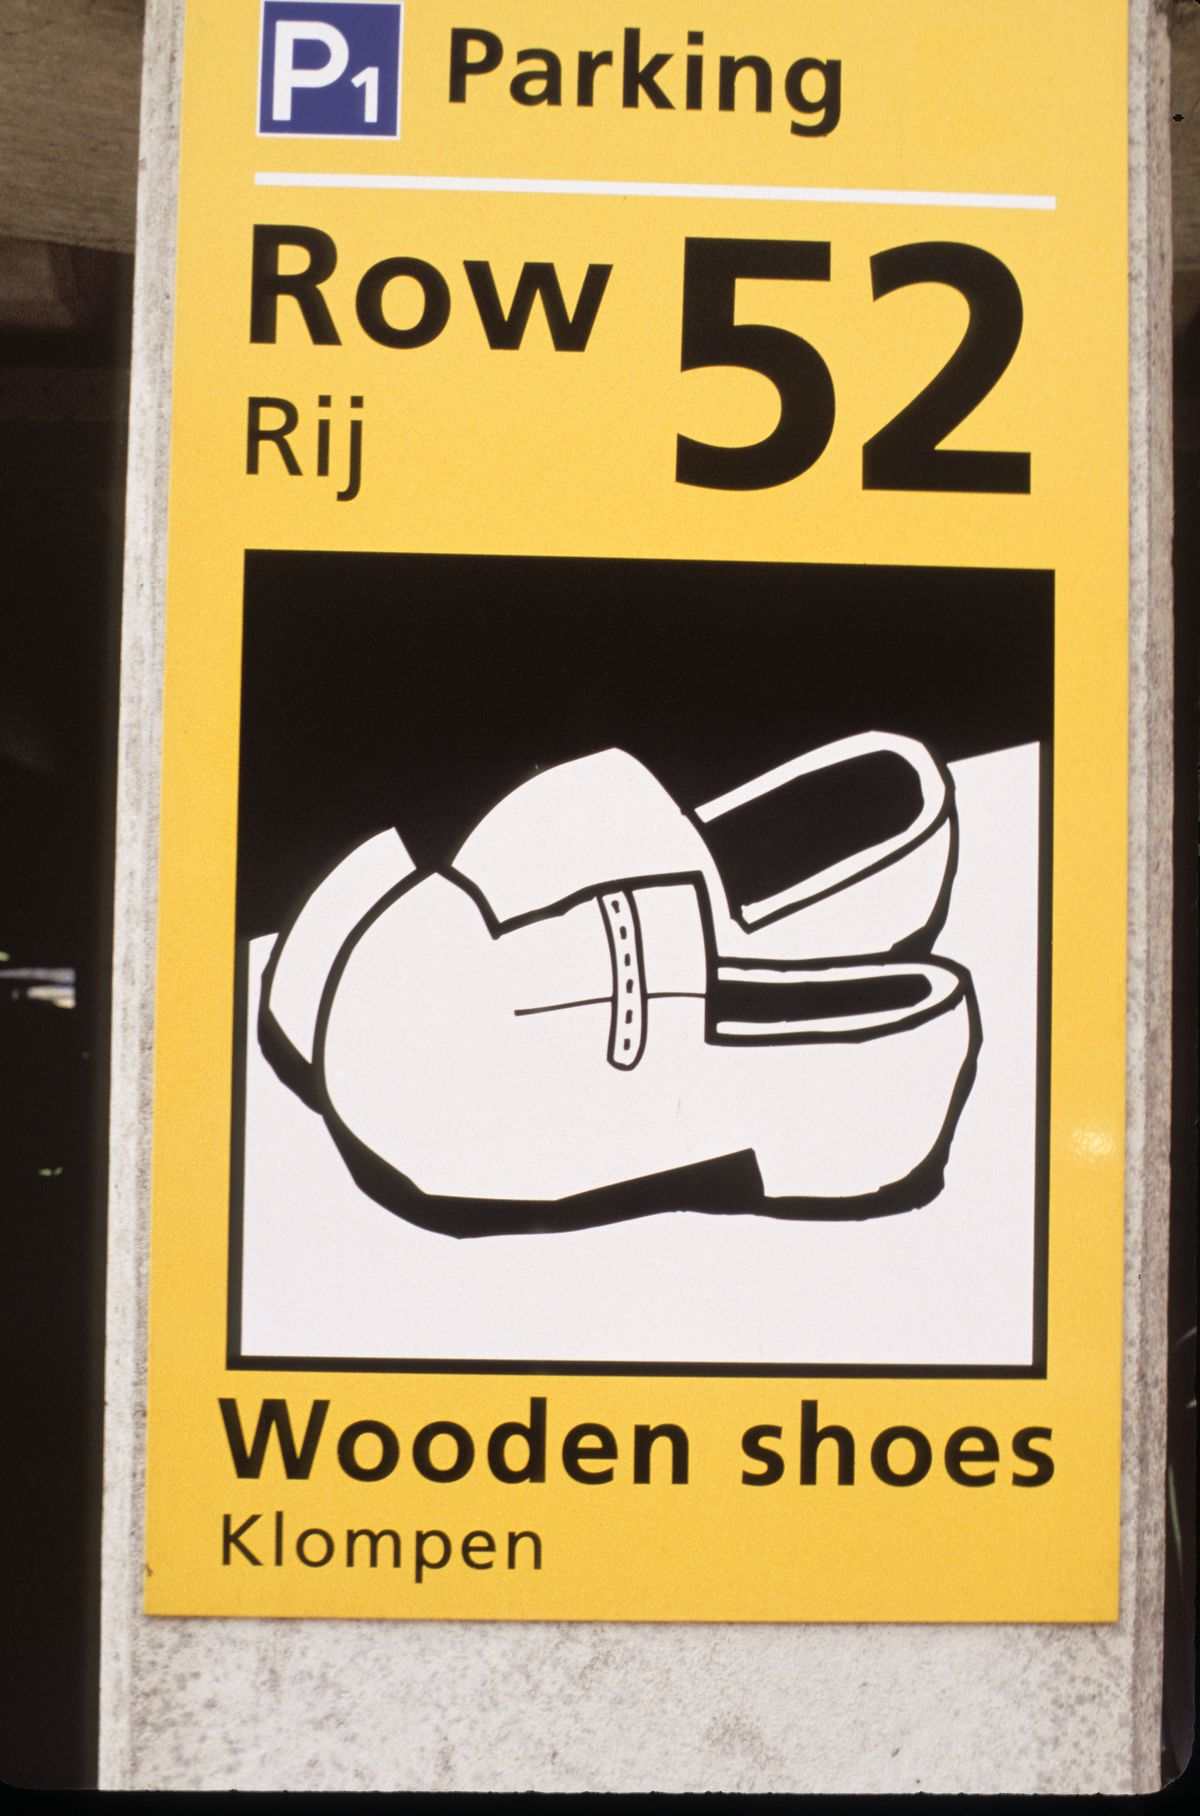 Netherlands, Schiphol Airport, Parking Sign, Wooden Shoes. (Photo by Education Images/UIG via Getty Images)